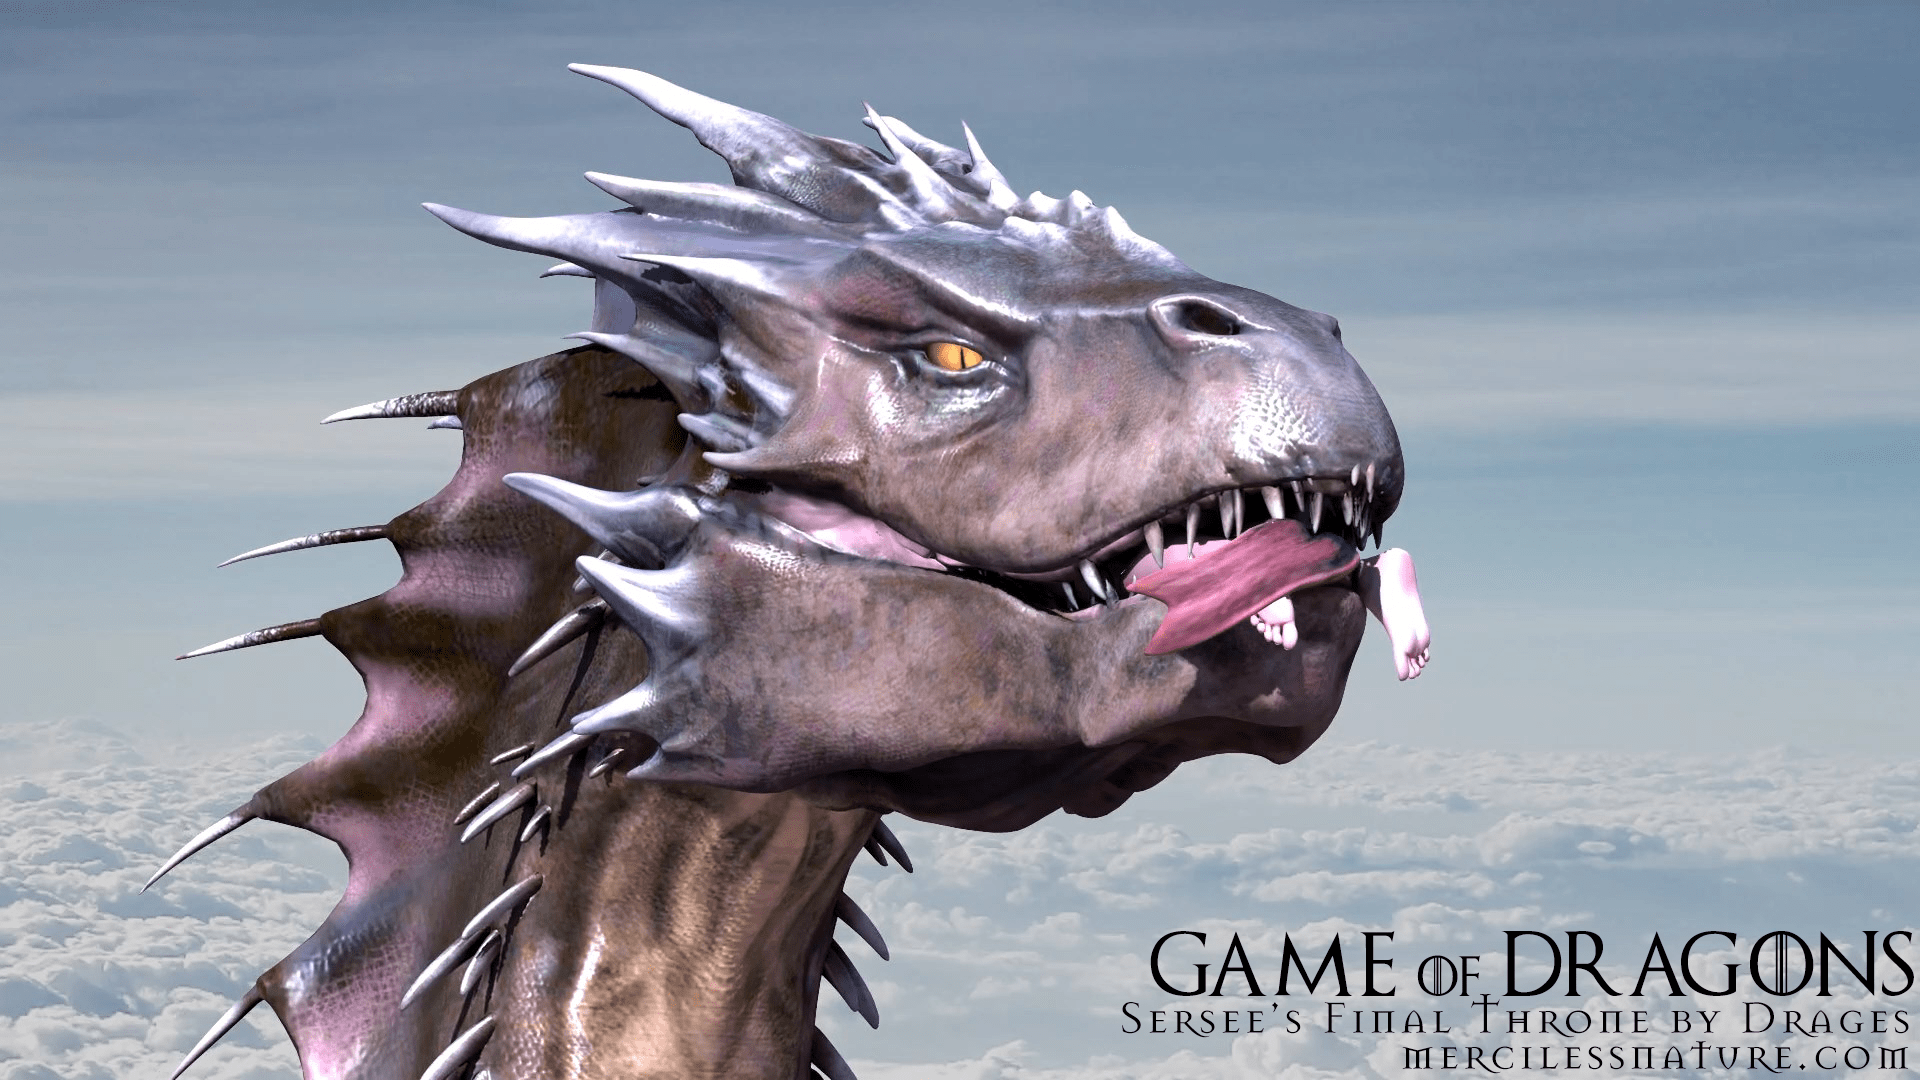 Game of Dragons - Furry